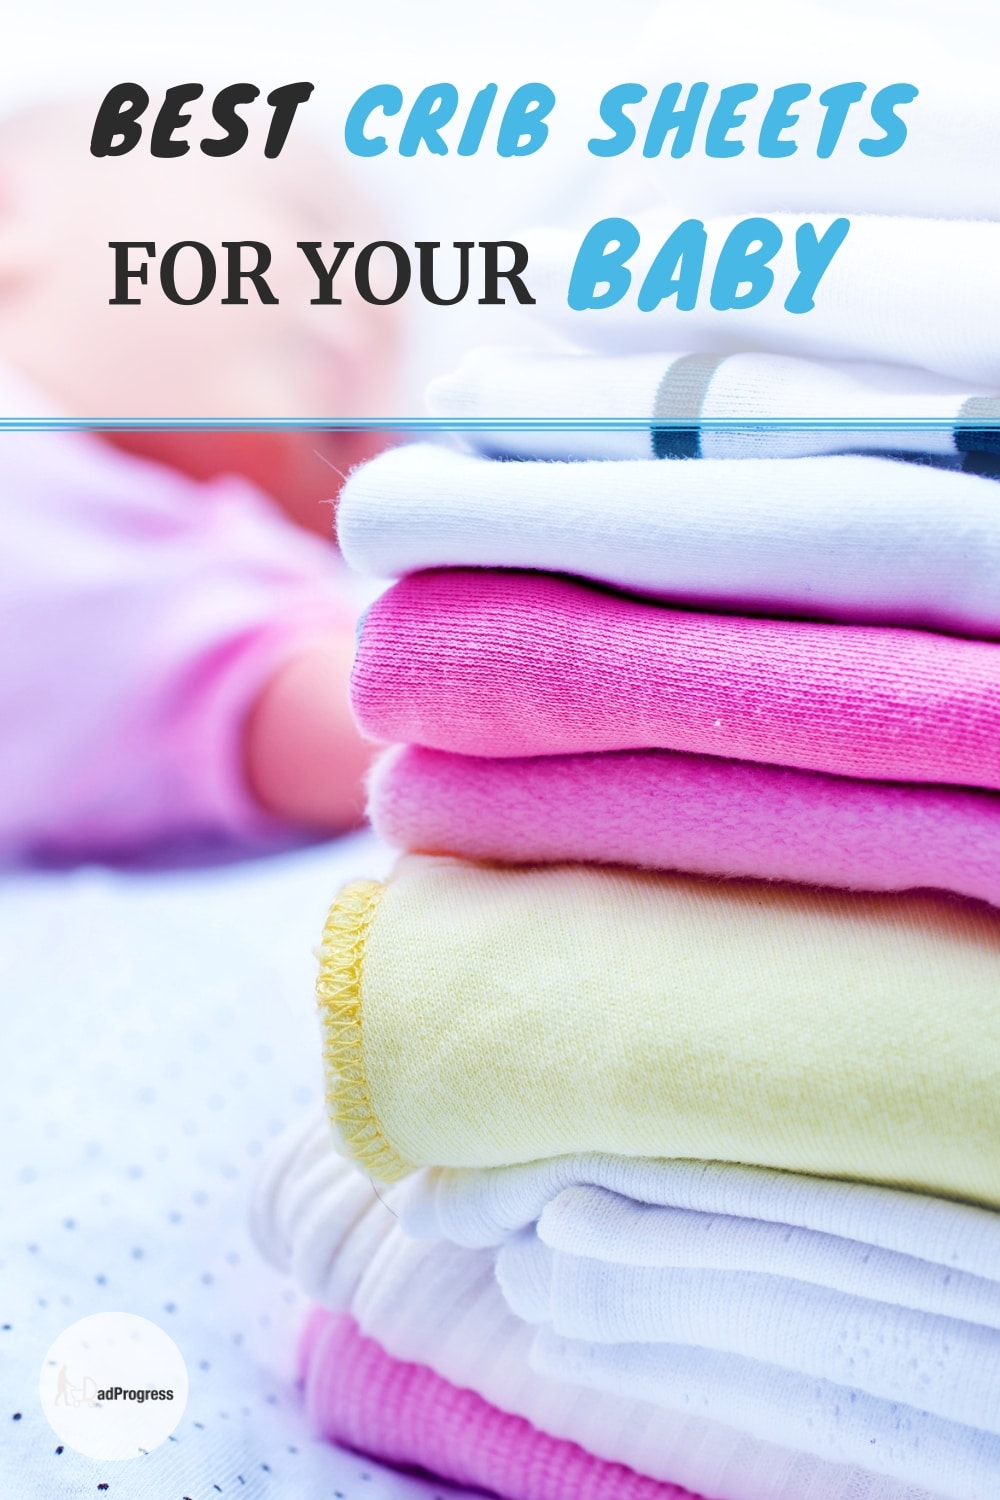 If you're looking for a crib sheet for your standard or mini crib mattress, then click to read my guide on best baby sheets. You may even want to buy organic sheets for your baby boy or girl!